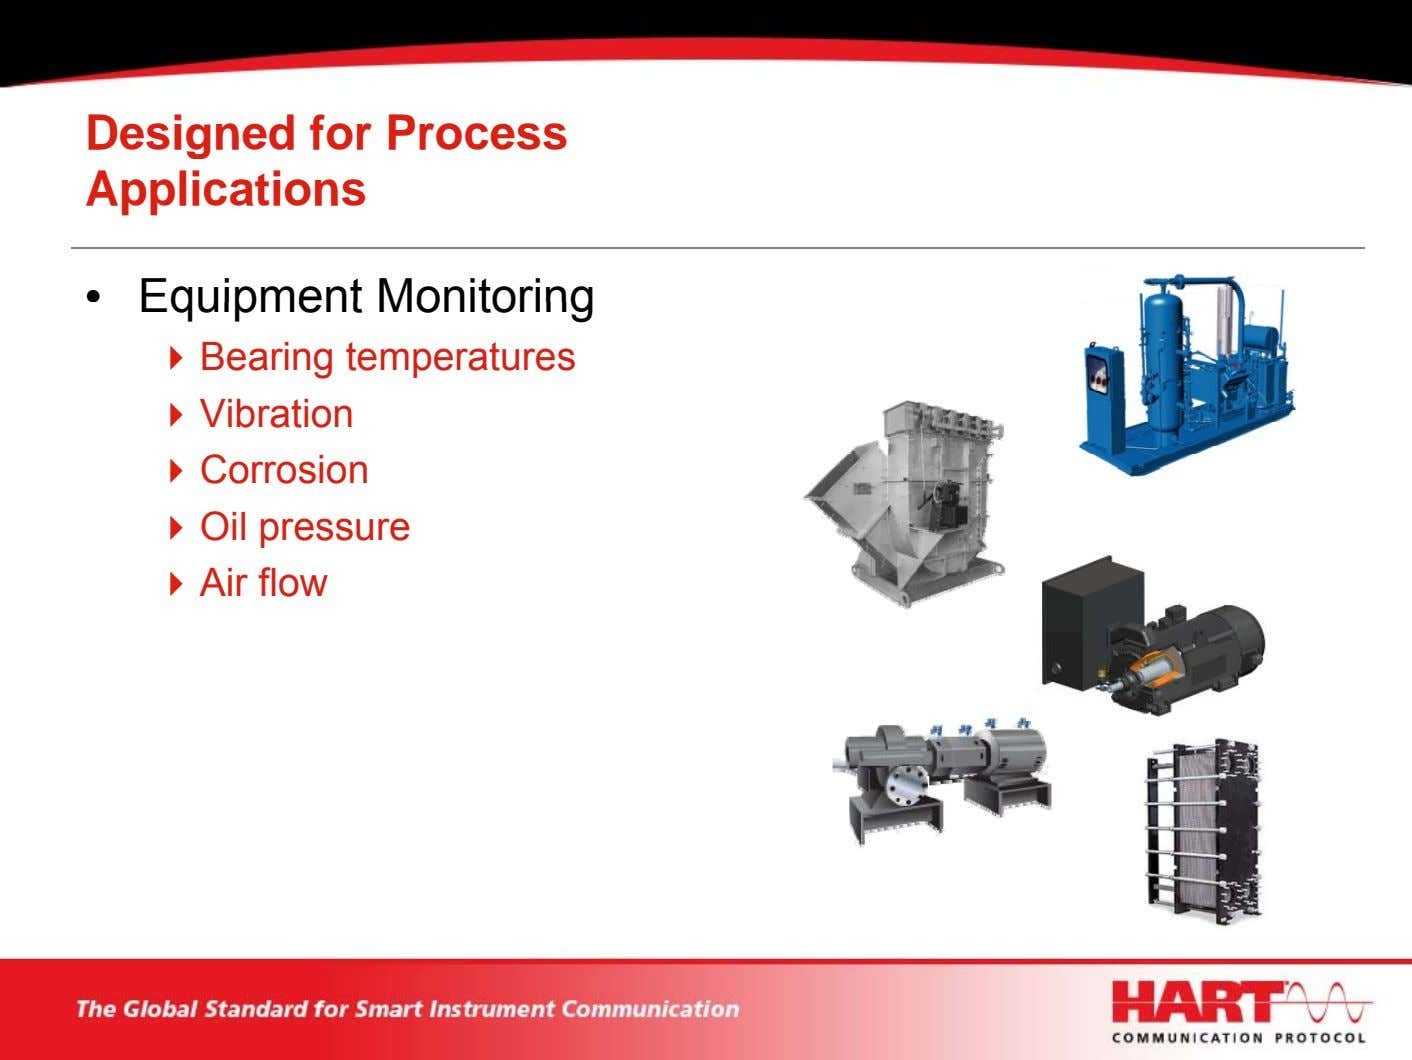 Designed for Process Applications • Equipment Monitoring Bearing temperatures Vibration Corrosion Oil pressure